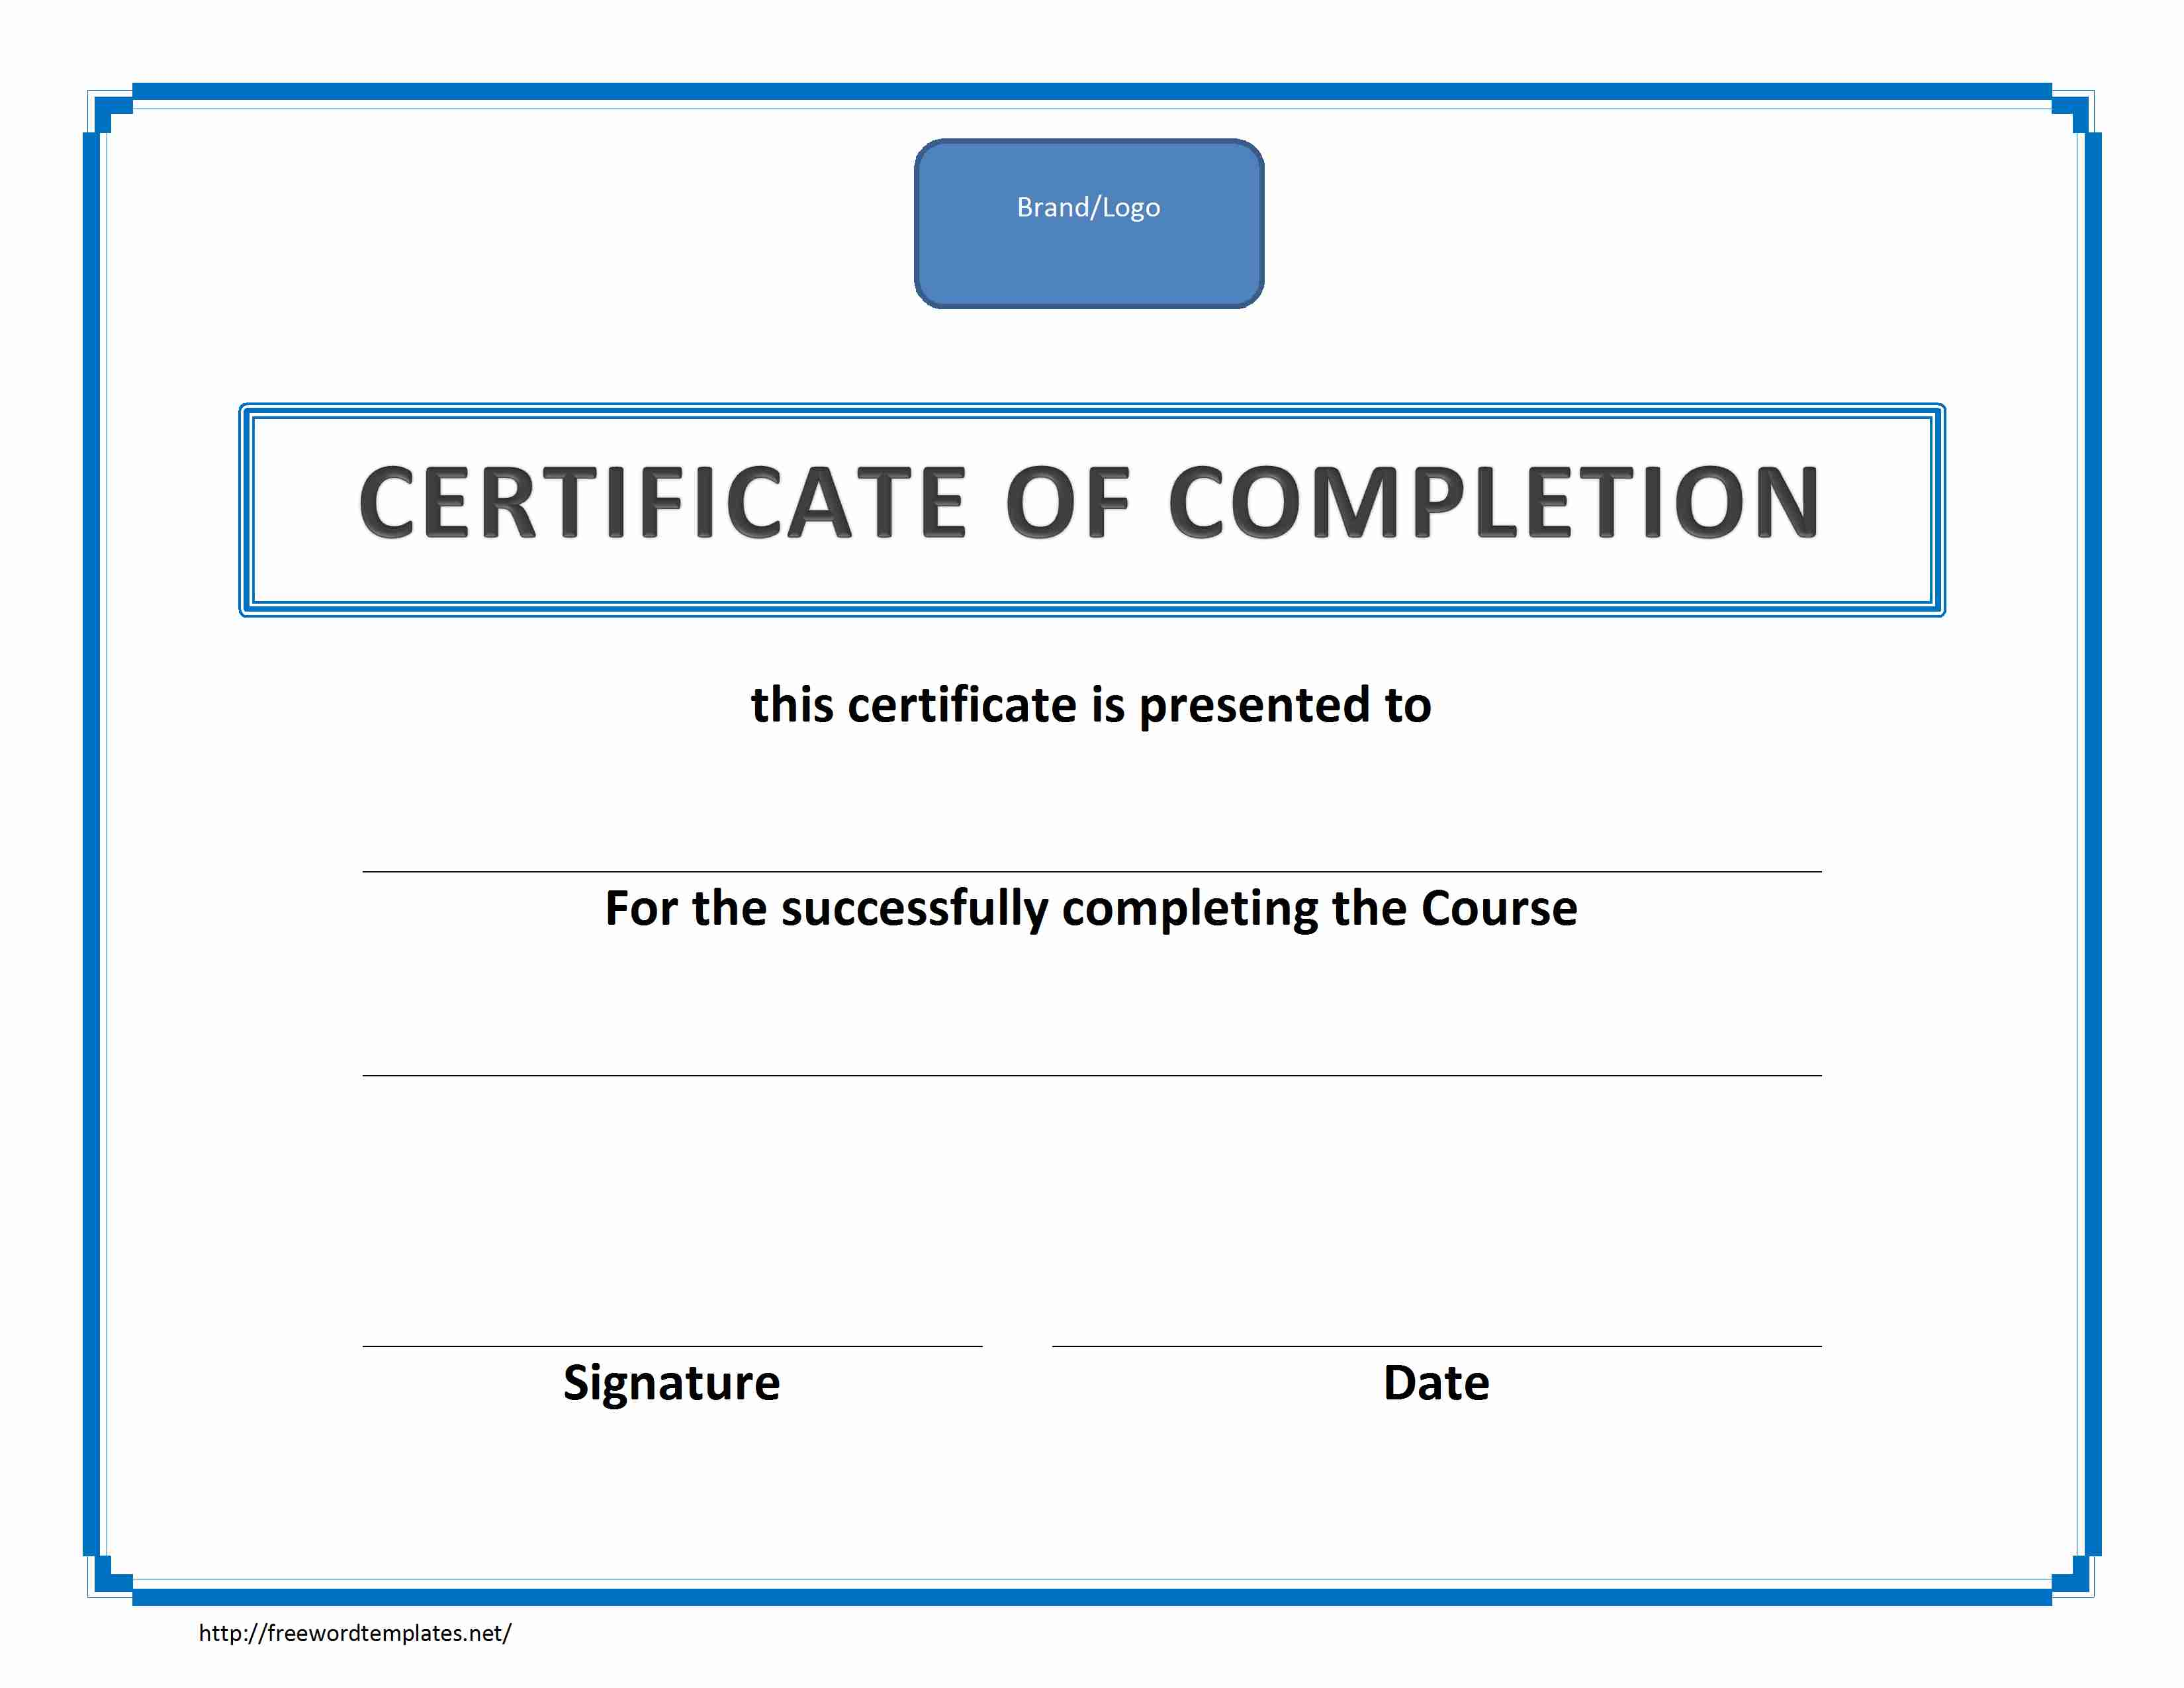 Freewordtemplates.net  Certificates Of Completion Templates